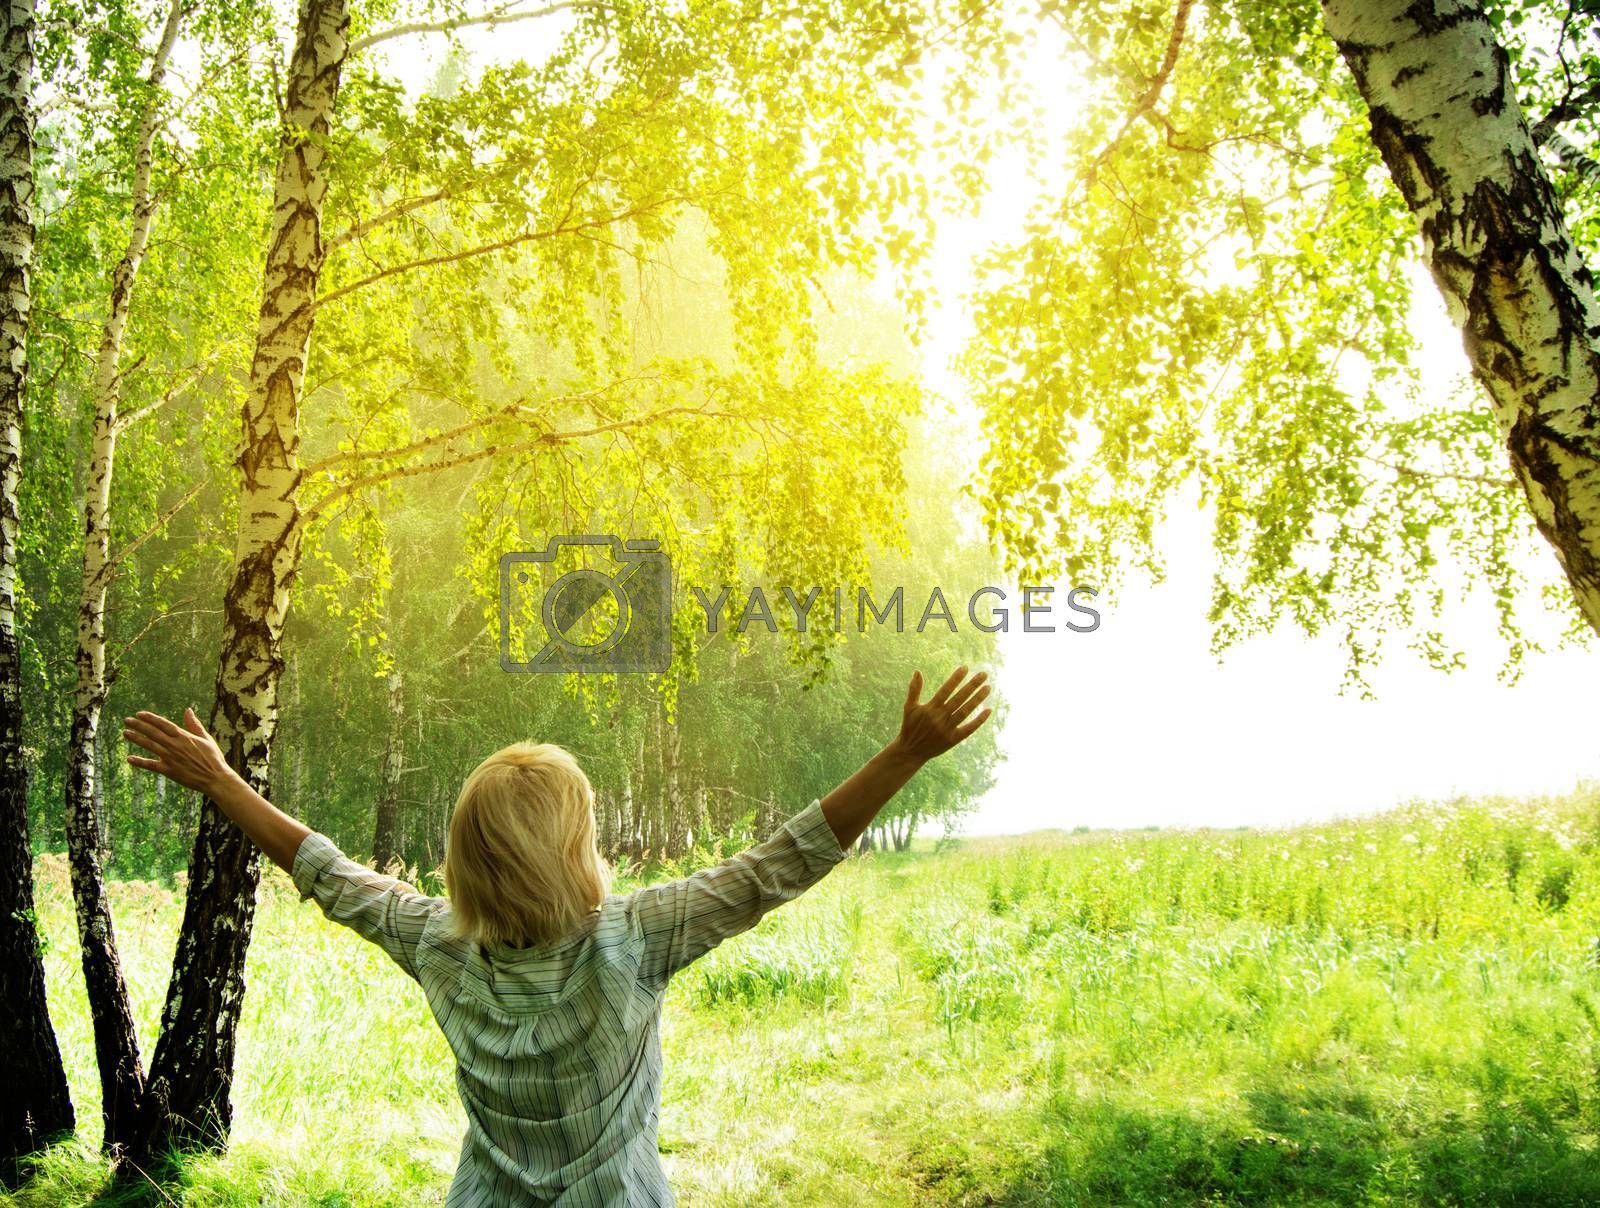 Summer, family, woman in the open in the forest near the trees raised her hands towards the sunlight, enjoying the summer heat and sun, concept of ecology and nature protection.